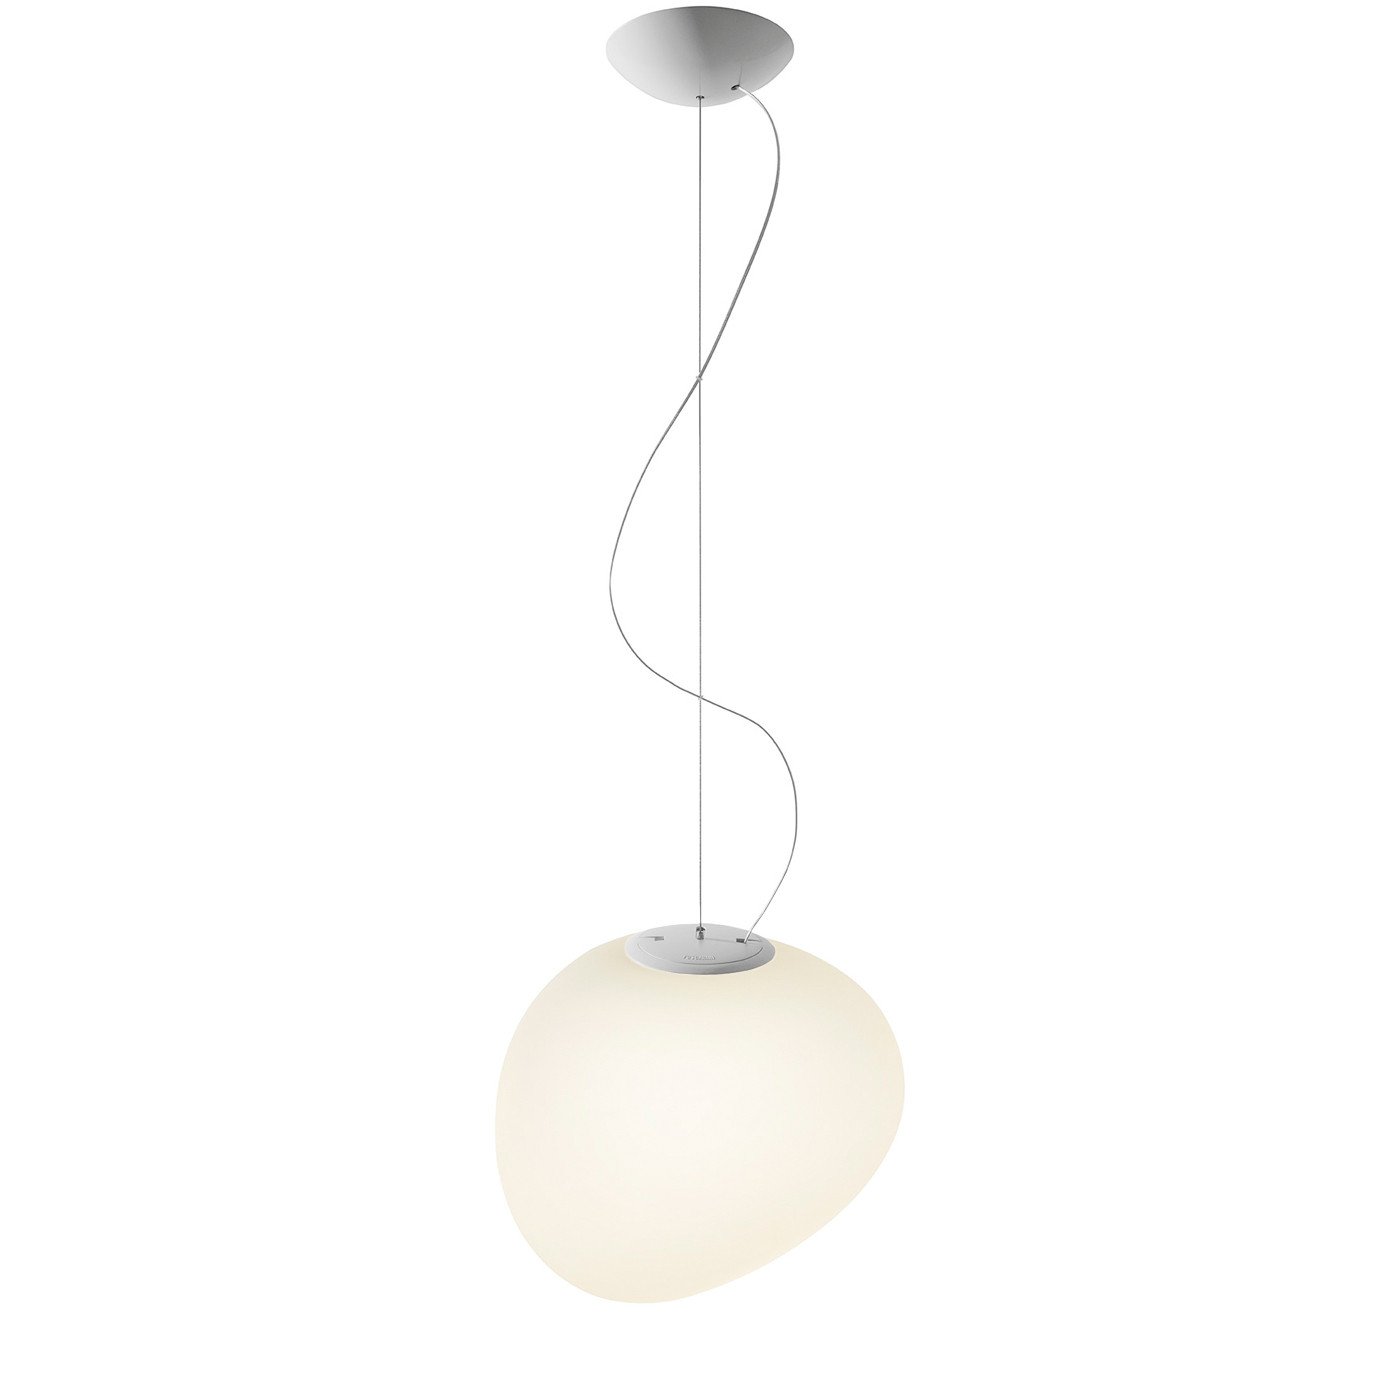 Foscarini Gregg Media Sospensione LED